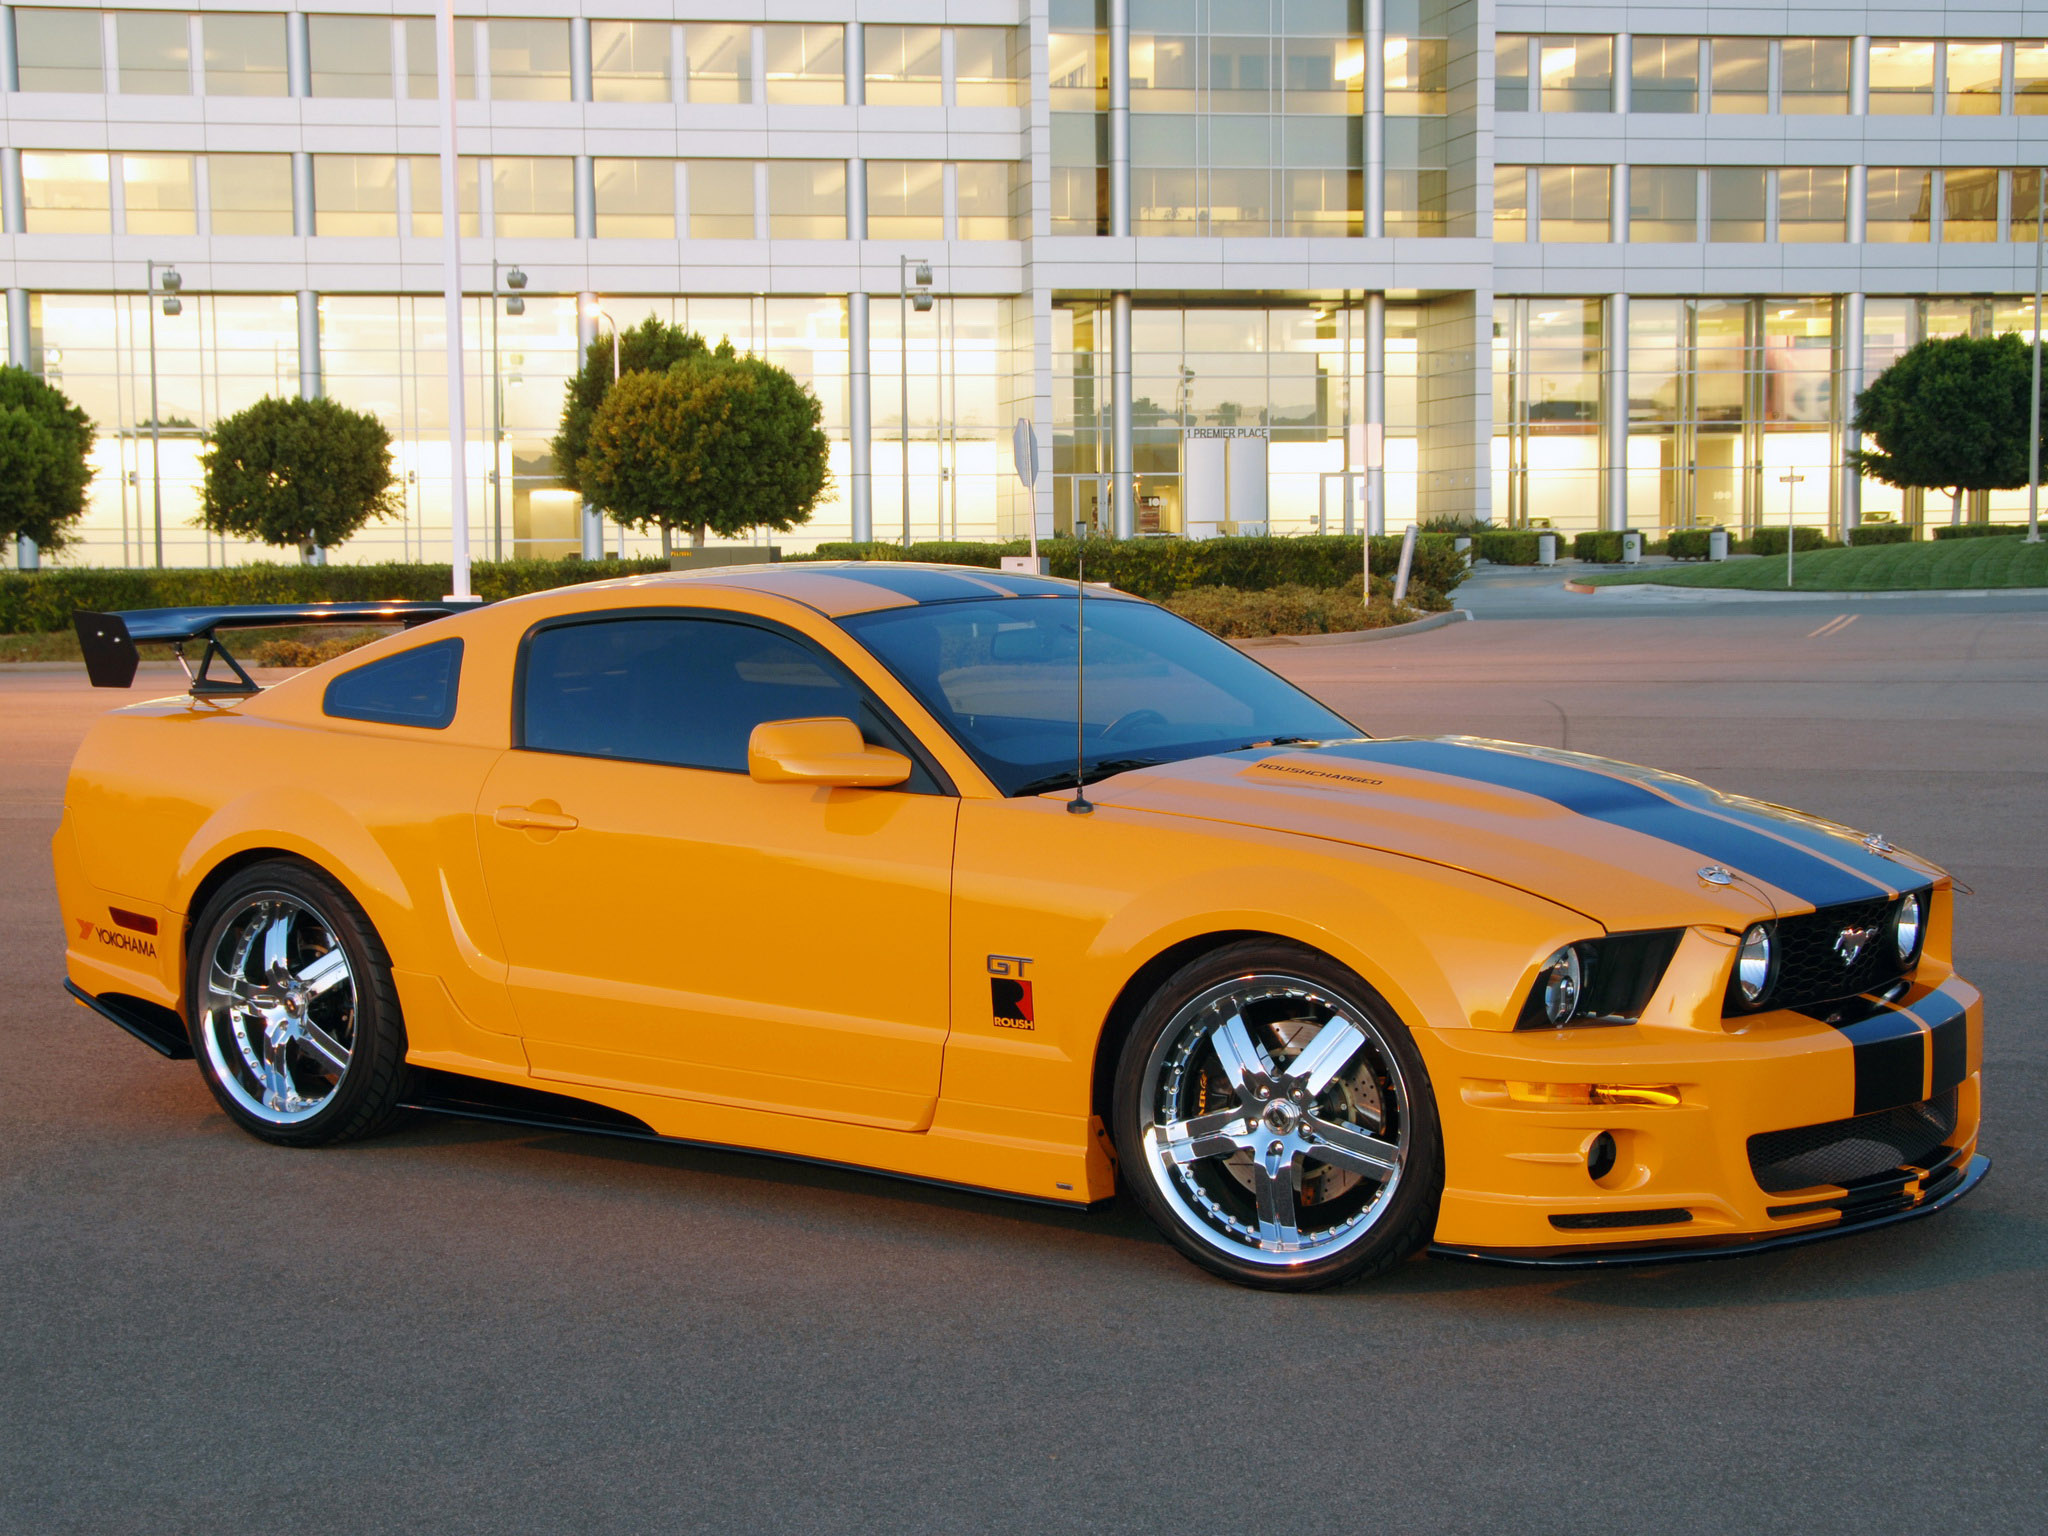 2006 roush ford mustang stage 3 muscle g wallpaper 2048x1536 193850 wallpaperup. Black Bedroom Furniture Sets. Home Design Ideas